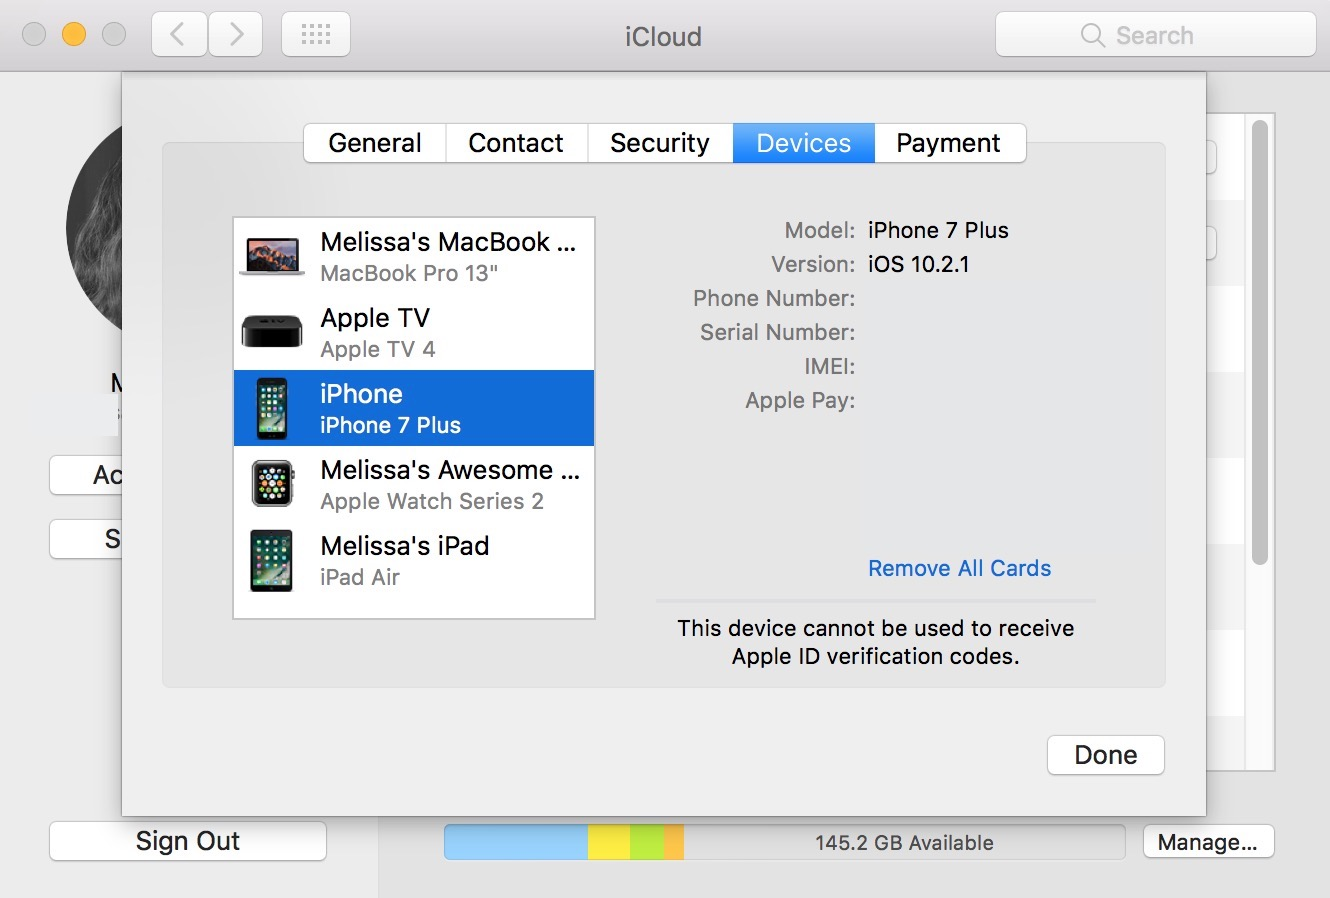 iCloud Devices Tab on the Mac